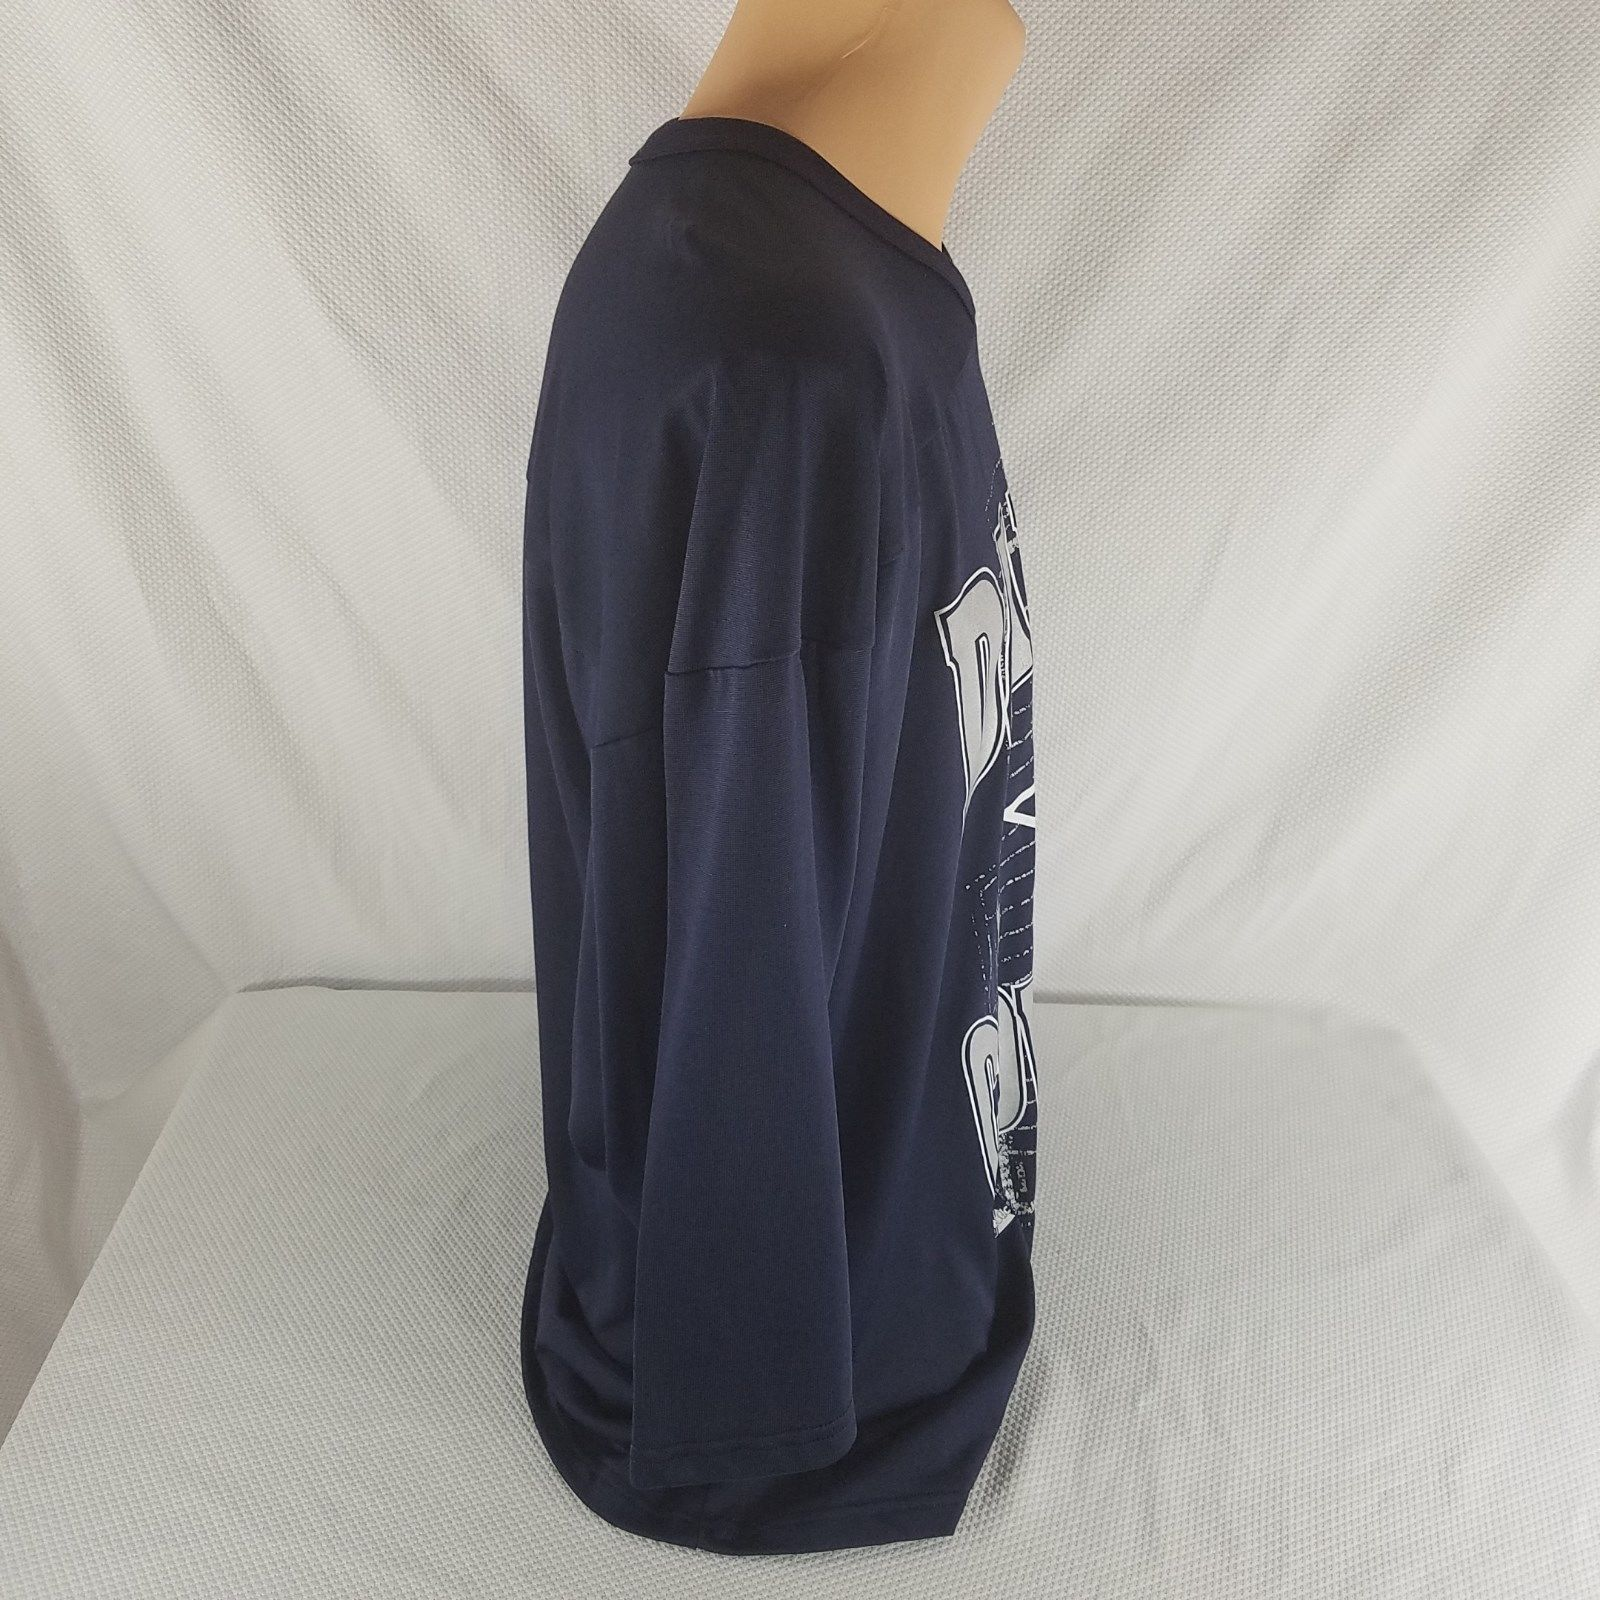 Majestic Dallas Cowboys NFL Navy Blue Silver Jersey Shirt XXL Made In The USA